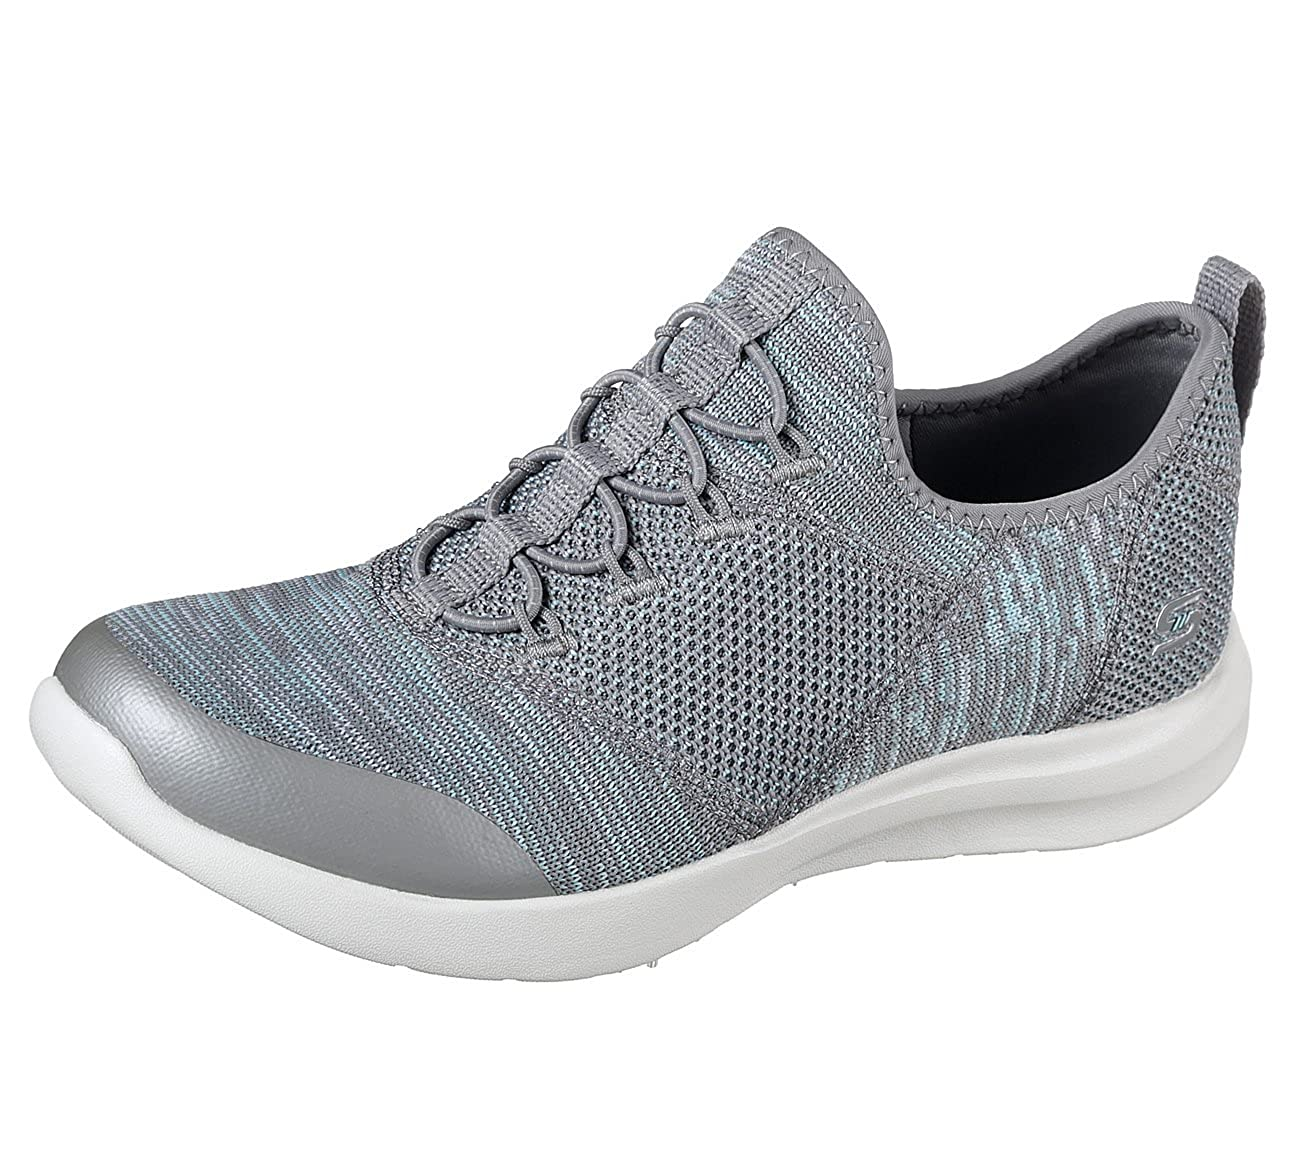 Skechers Ladies Mix & Match Gray/Mint Gray/Mint Match Slip on Memory Foam Schuhes 12880/GYMN-UK 3 (EU 36) - 9ec2c5